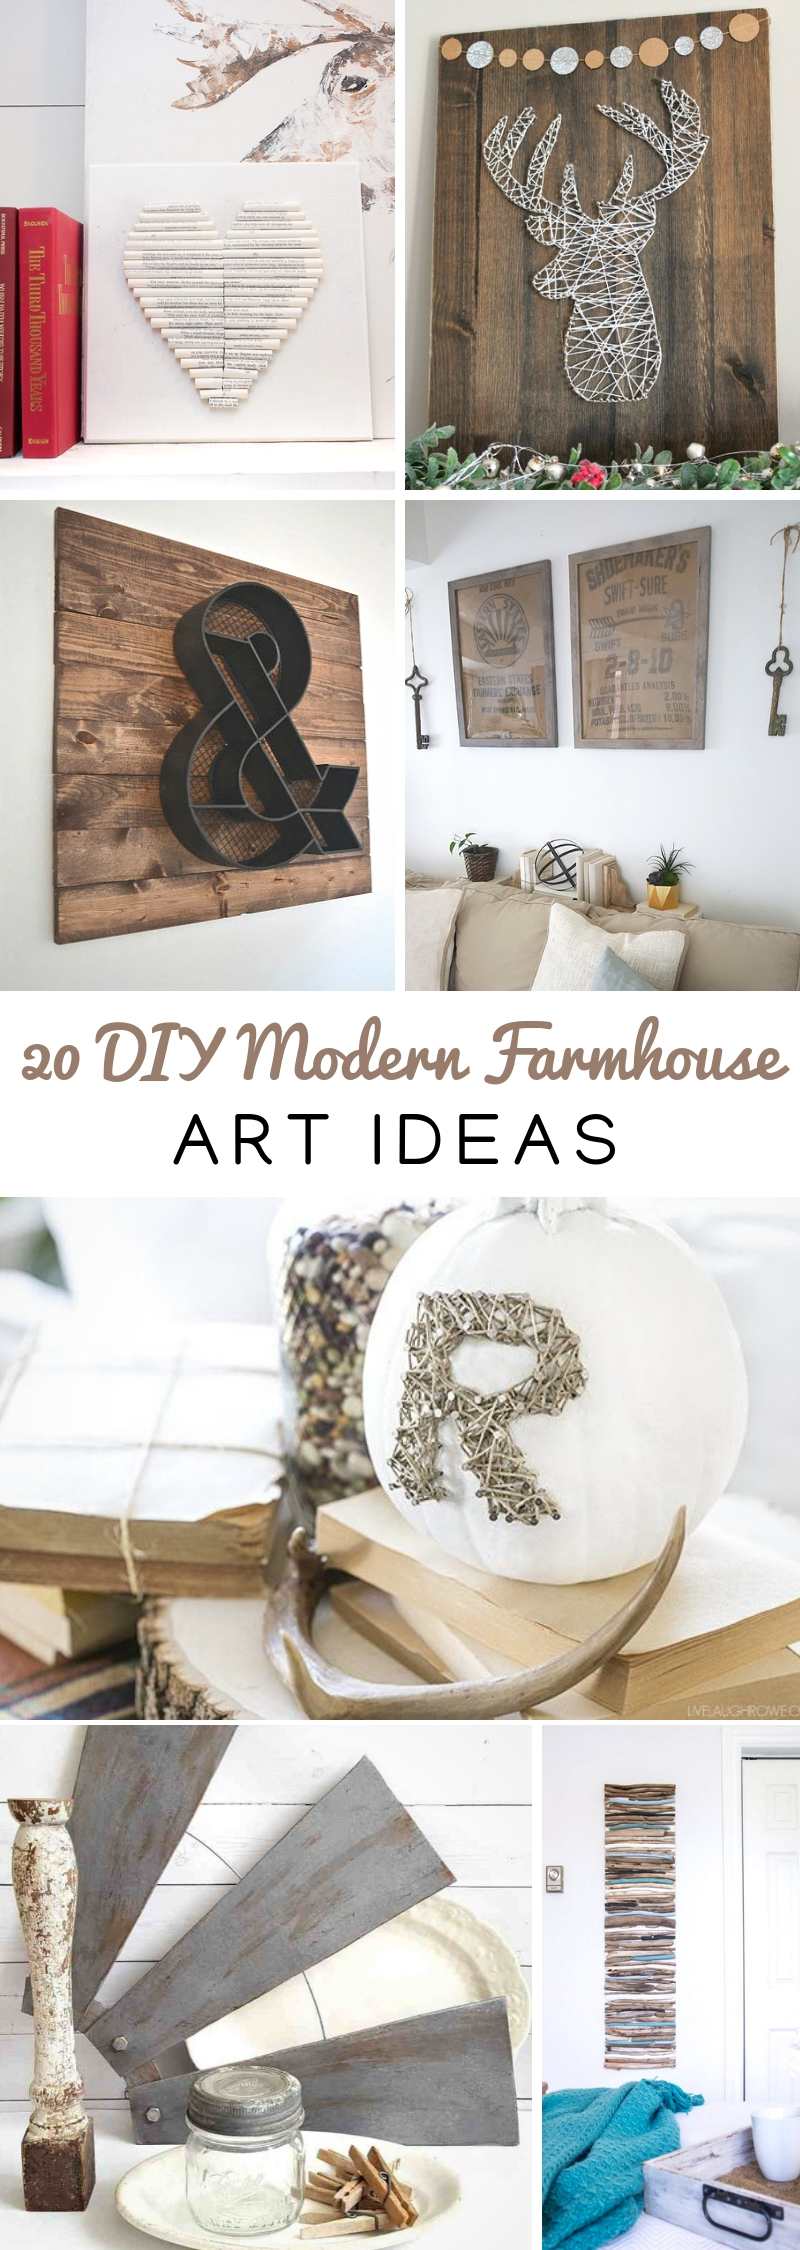 DIY Modern Farmhouse Art Ideas